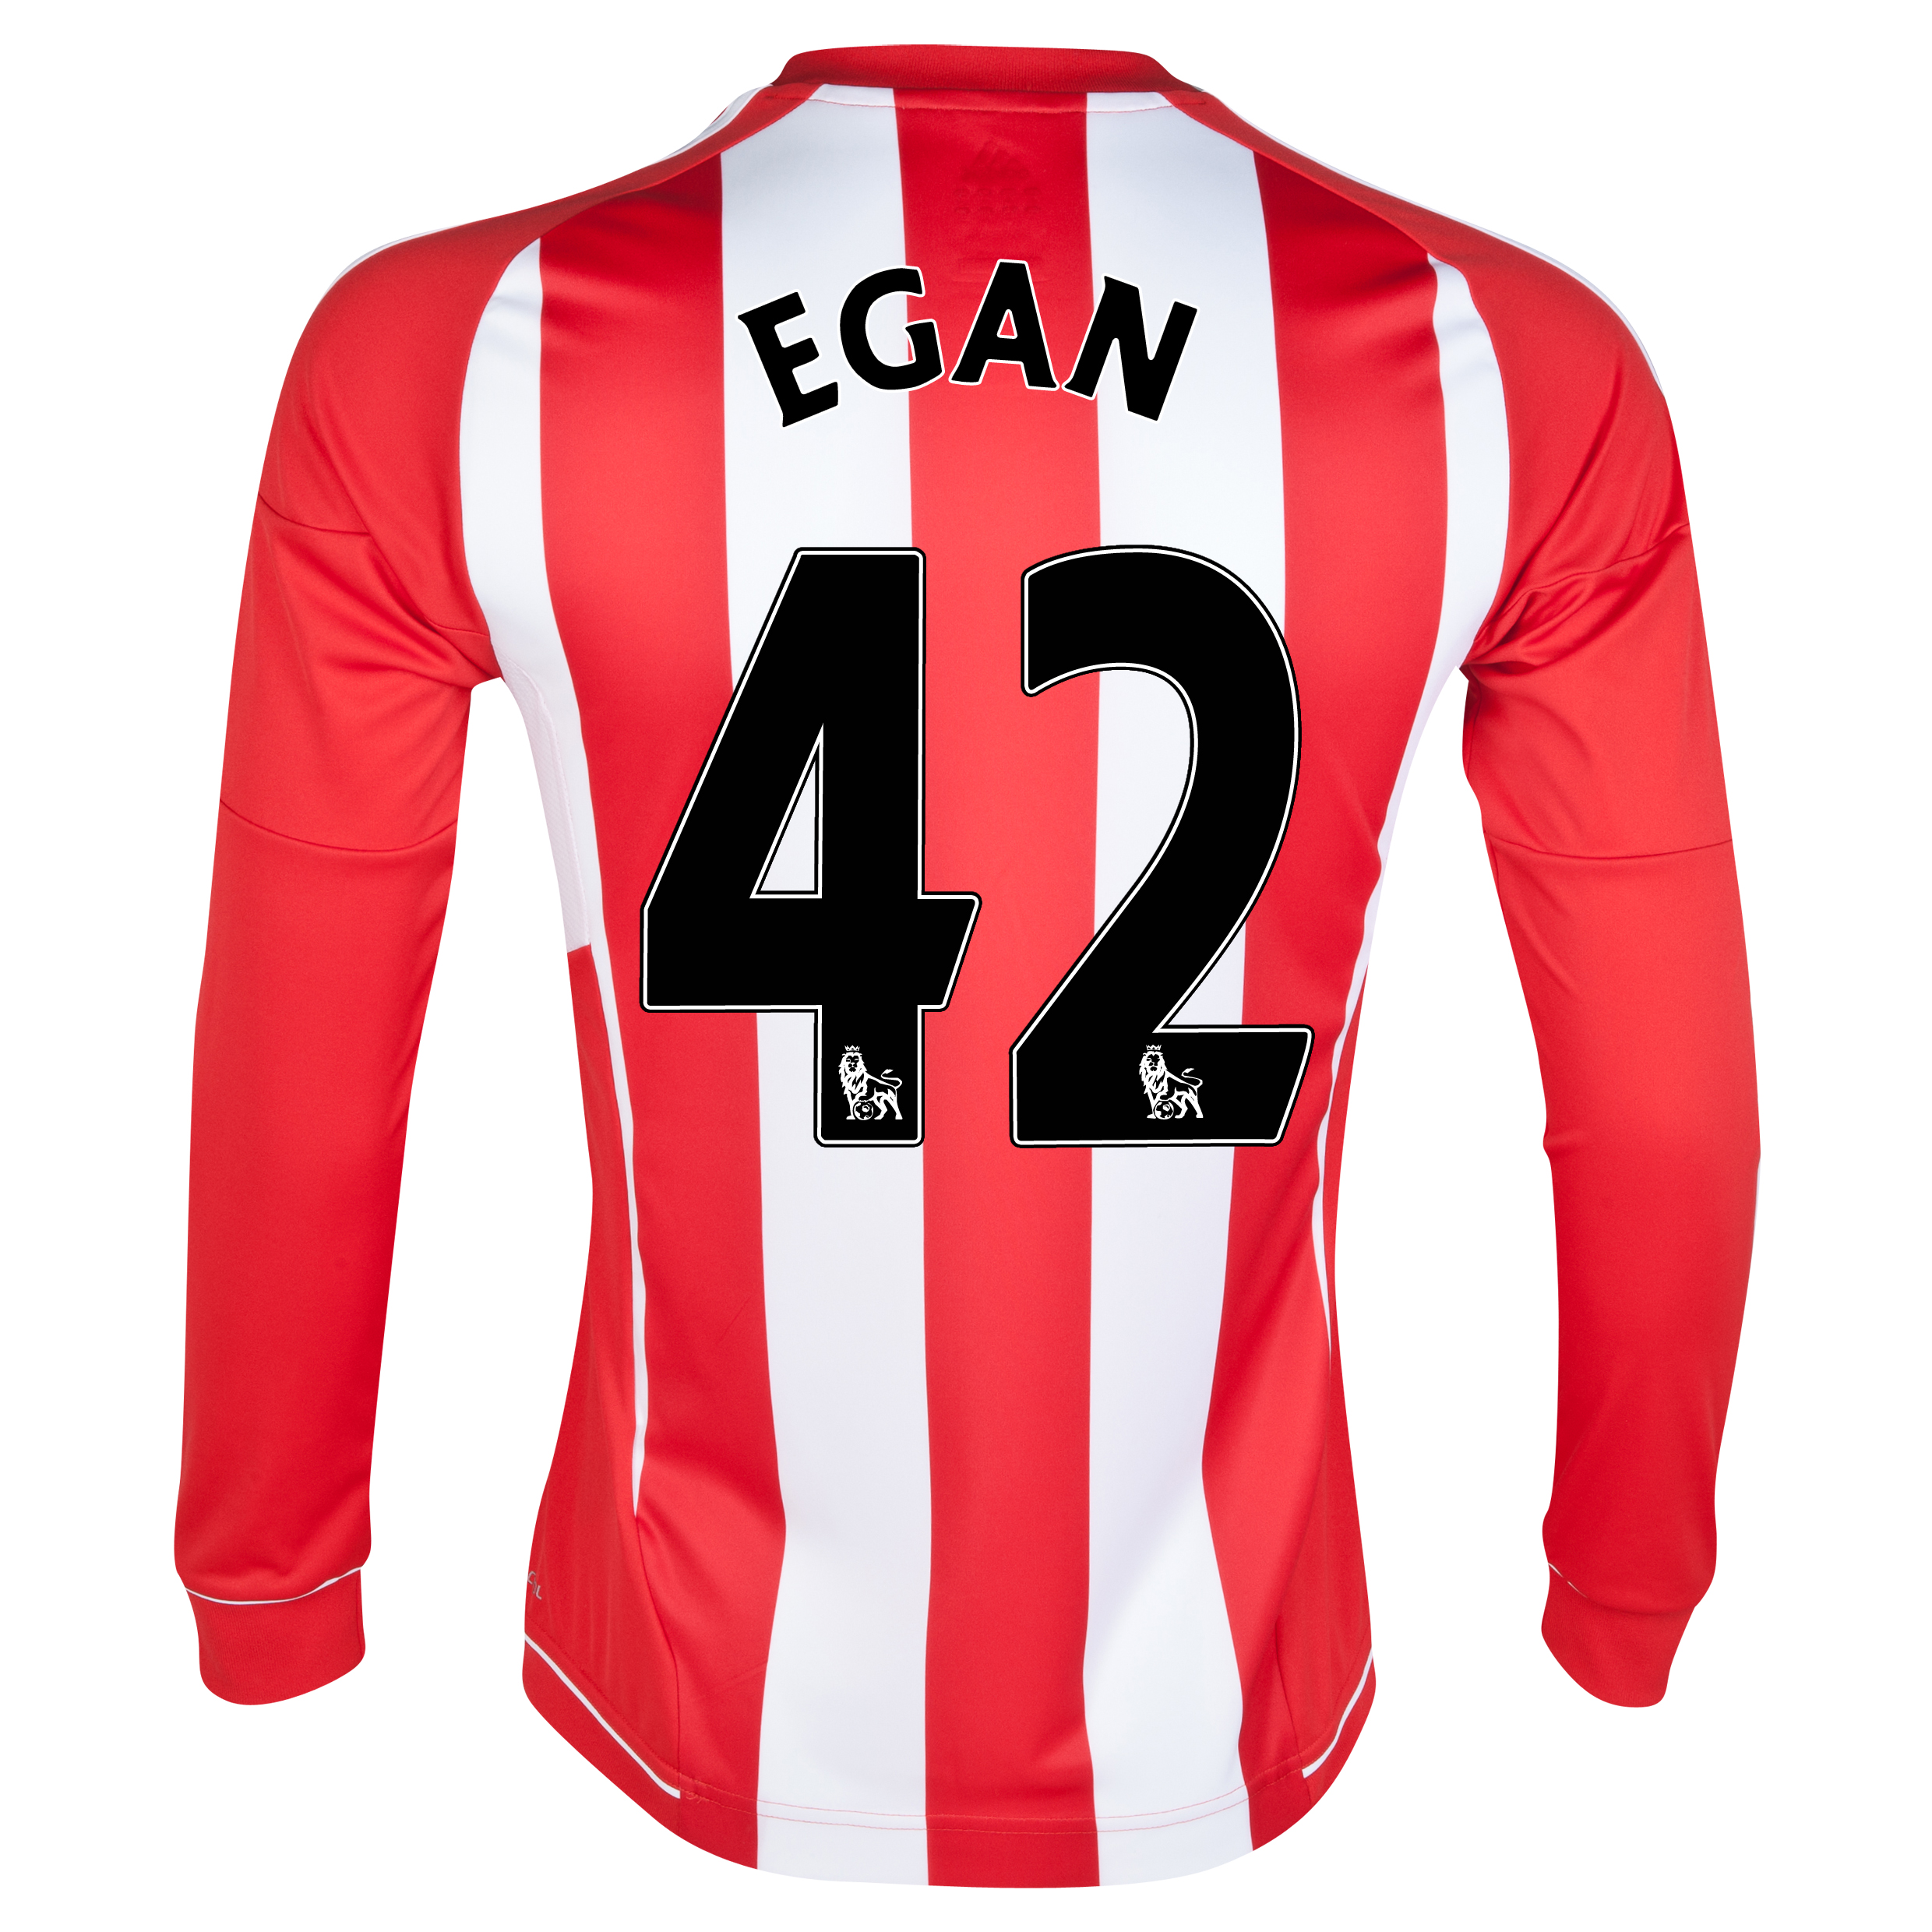 Sunderland Home Shirt 2012/13 - Long Sleeved with Egan 42 printing